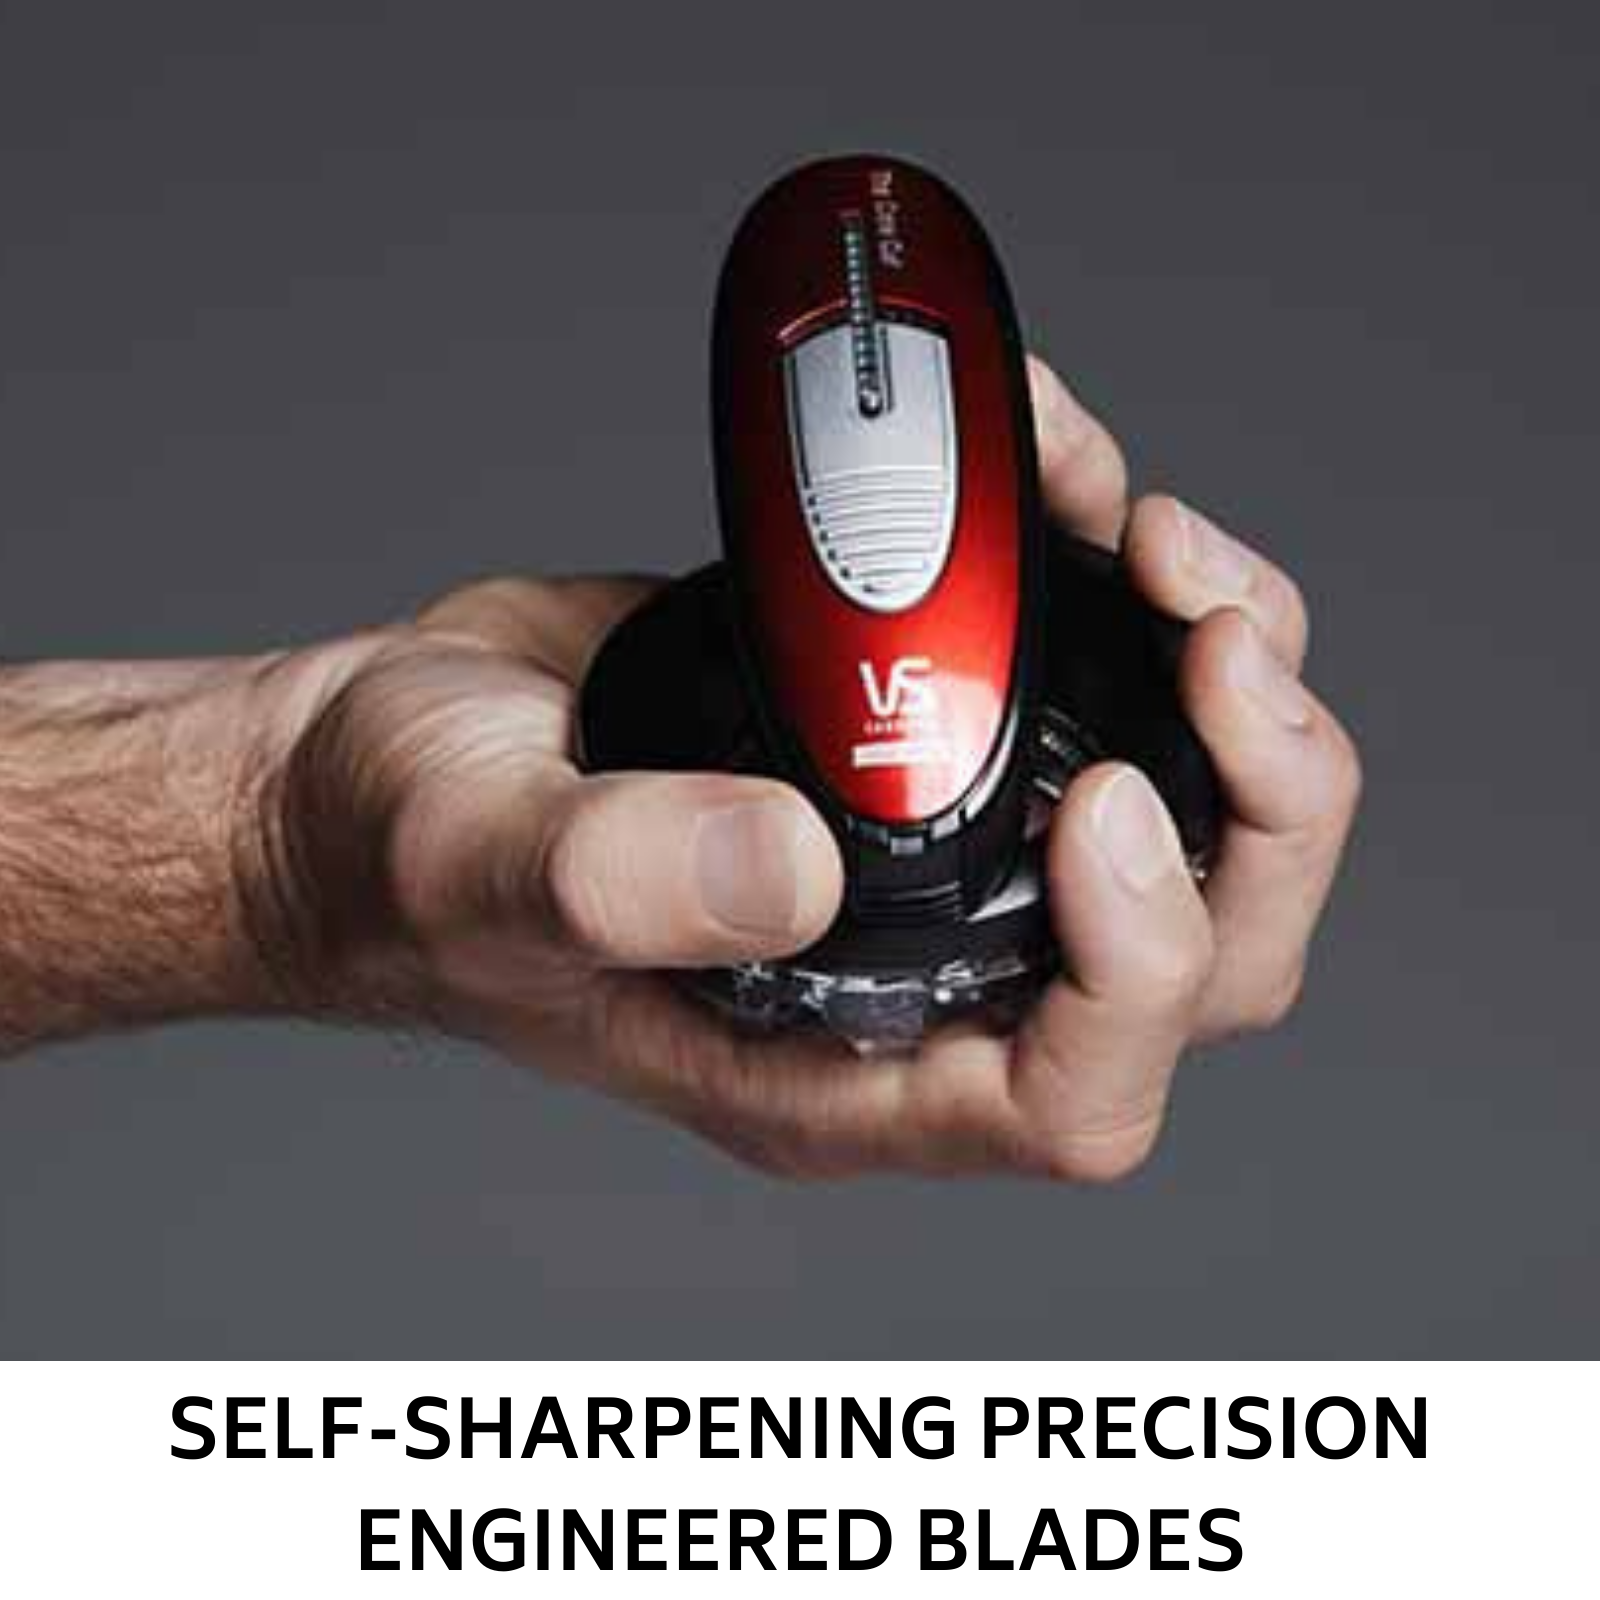 Mens Hair Clippers Trimmer Crew Cut Shaver Home Hair Cutting Grooming VS Sassoon